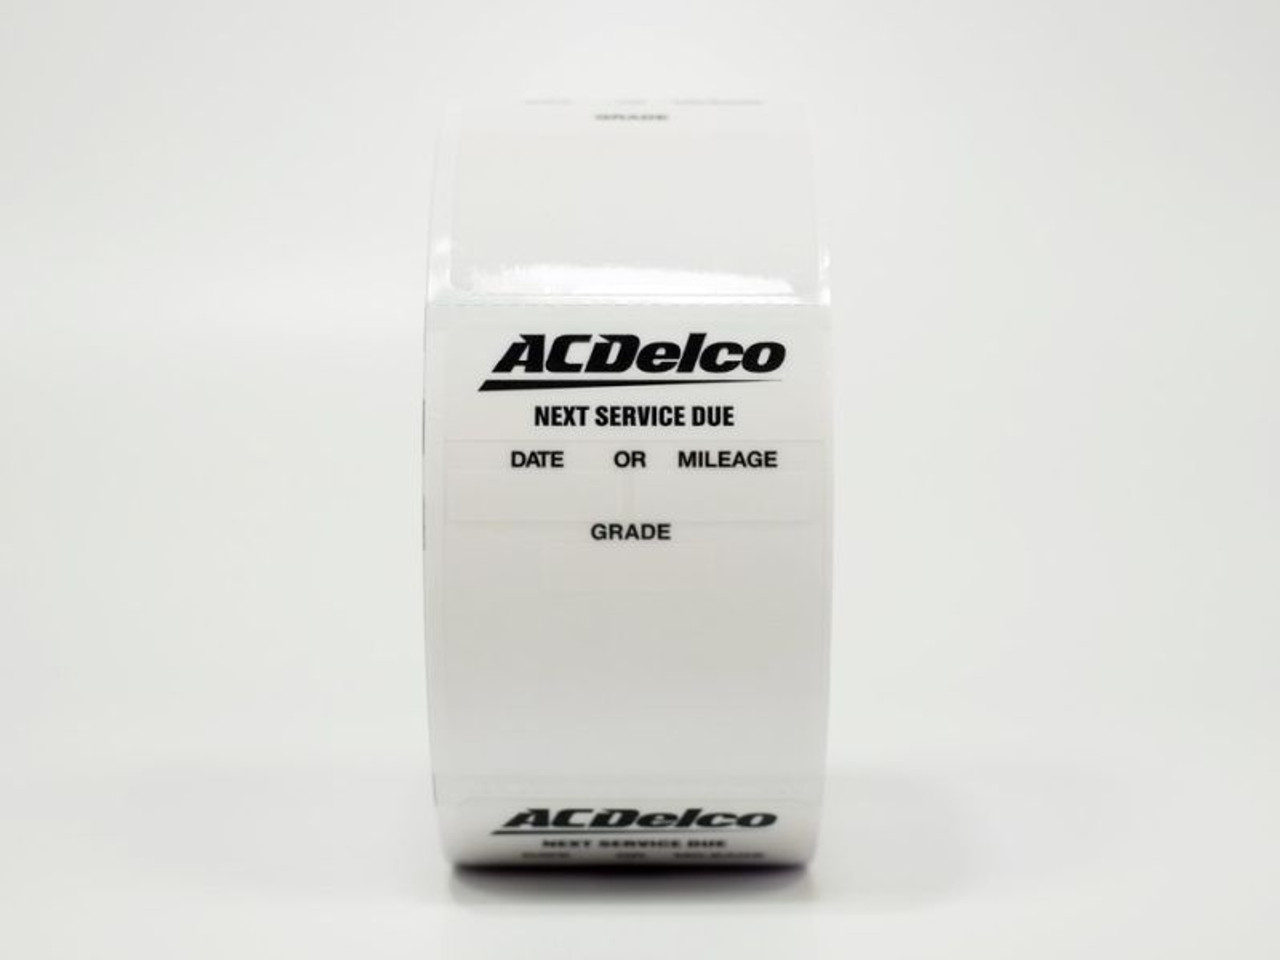 ACDelco branded oil change sticker - clear static cling